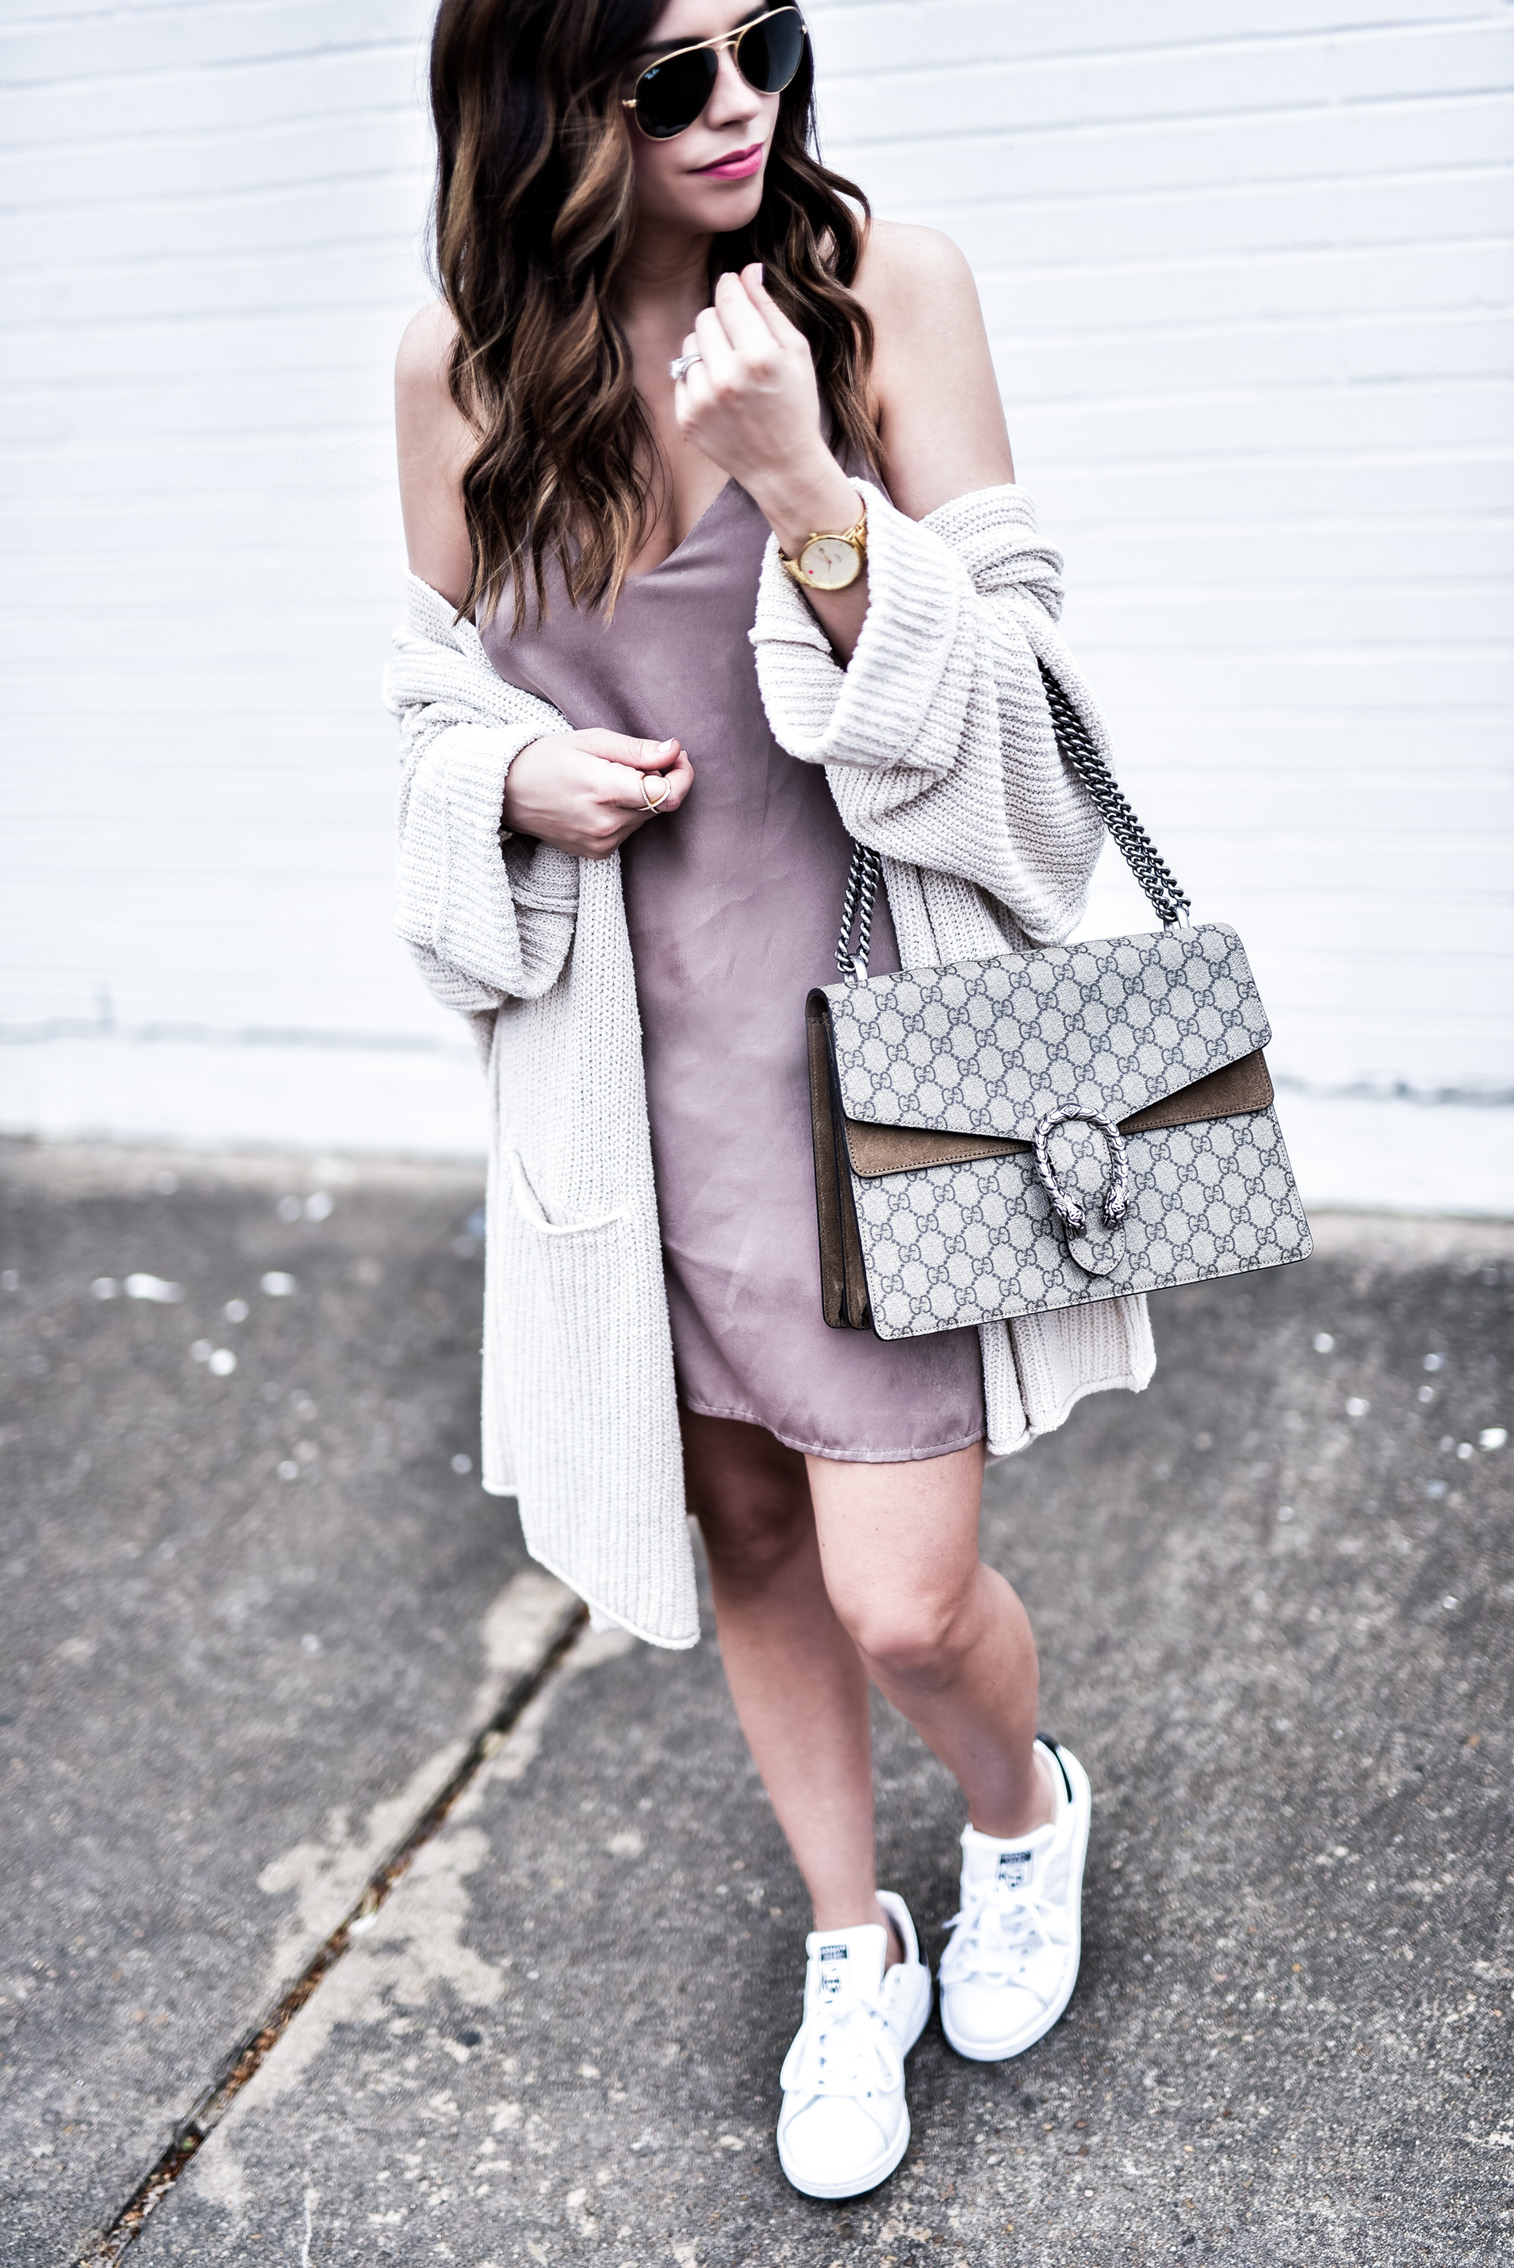 Tiffany Jais Houston fashion and lifestyle blogger wearing a satin slip dress from Nordstrom and a free people cardigan, click to read more   Women's fashion 2017, spring outfit ideas, Gucci Dionysus bag